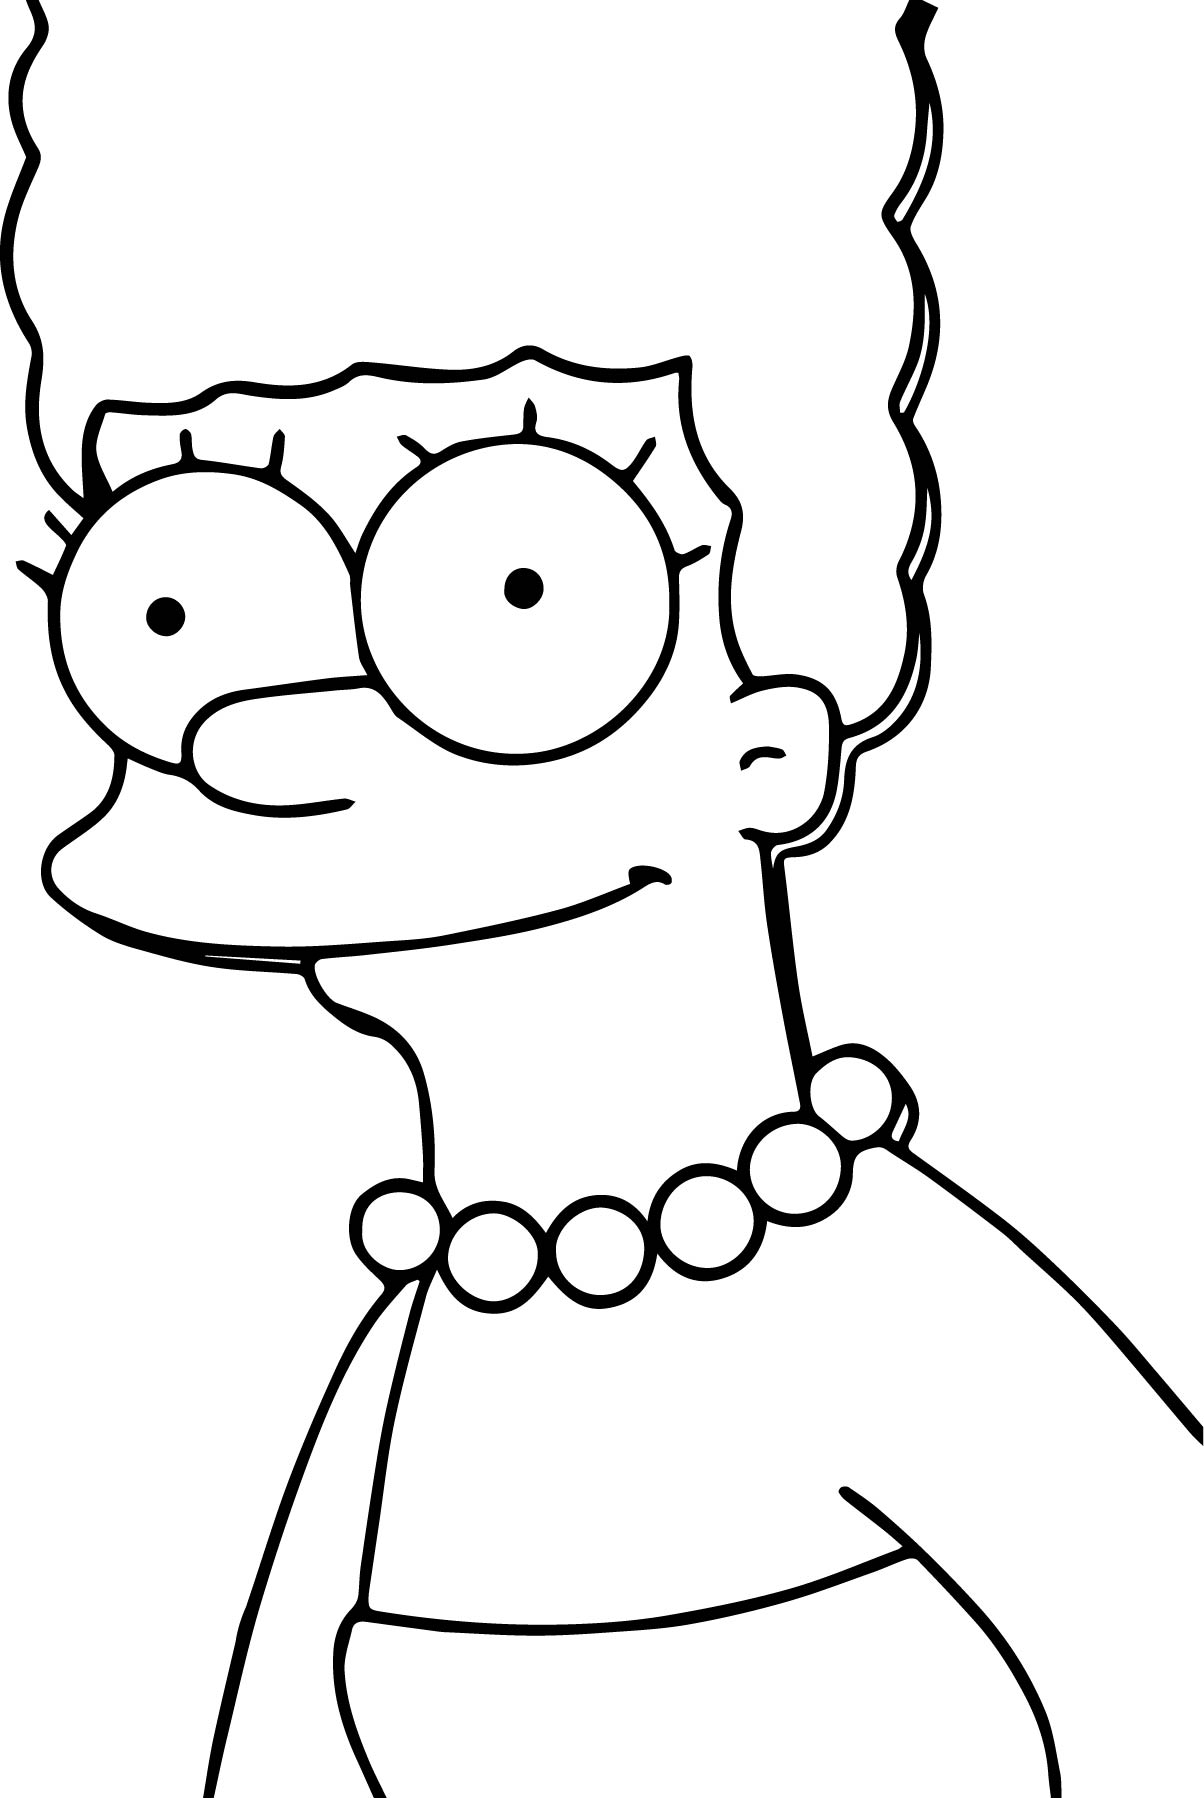 Marge the simpsons coloring page for Coloring pages simpsons